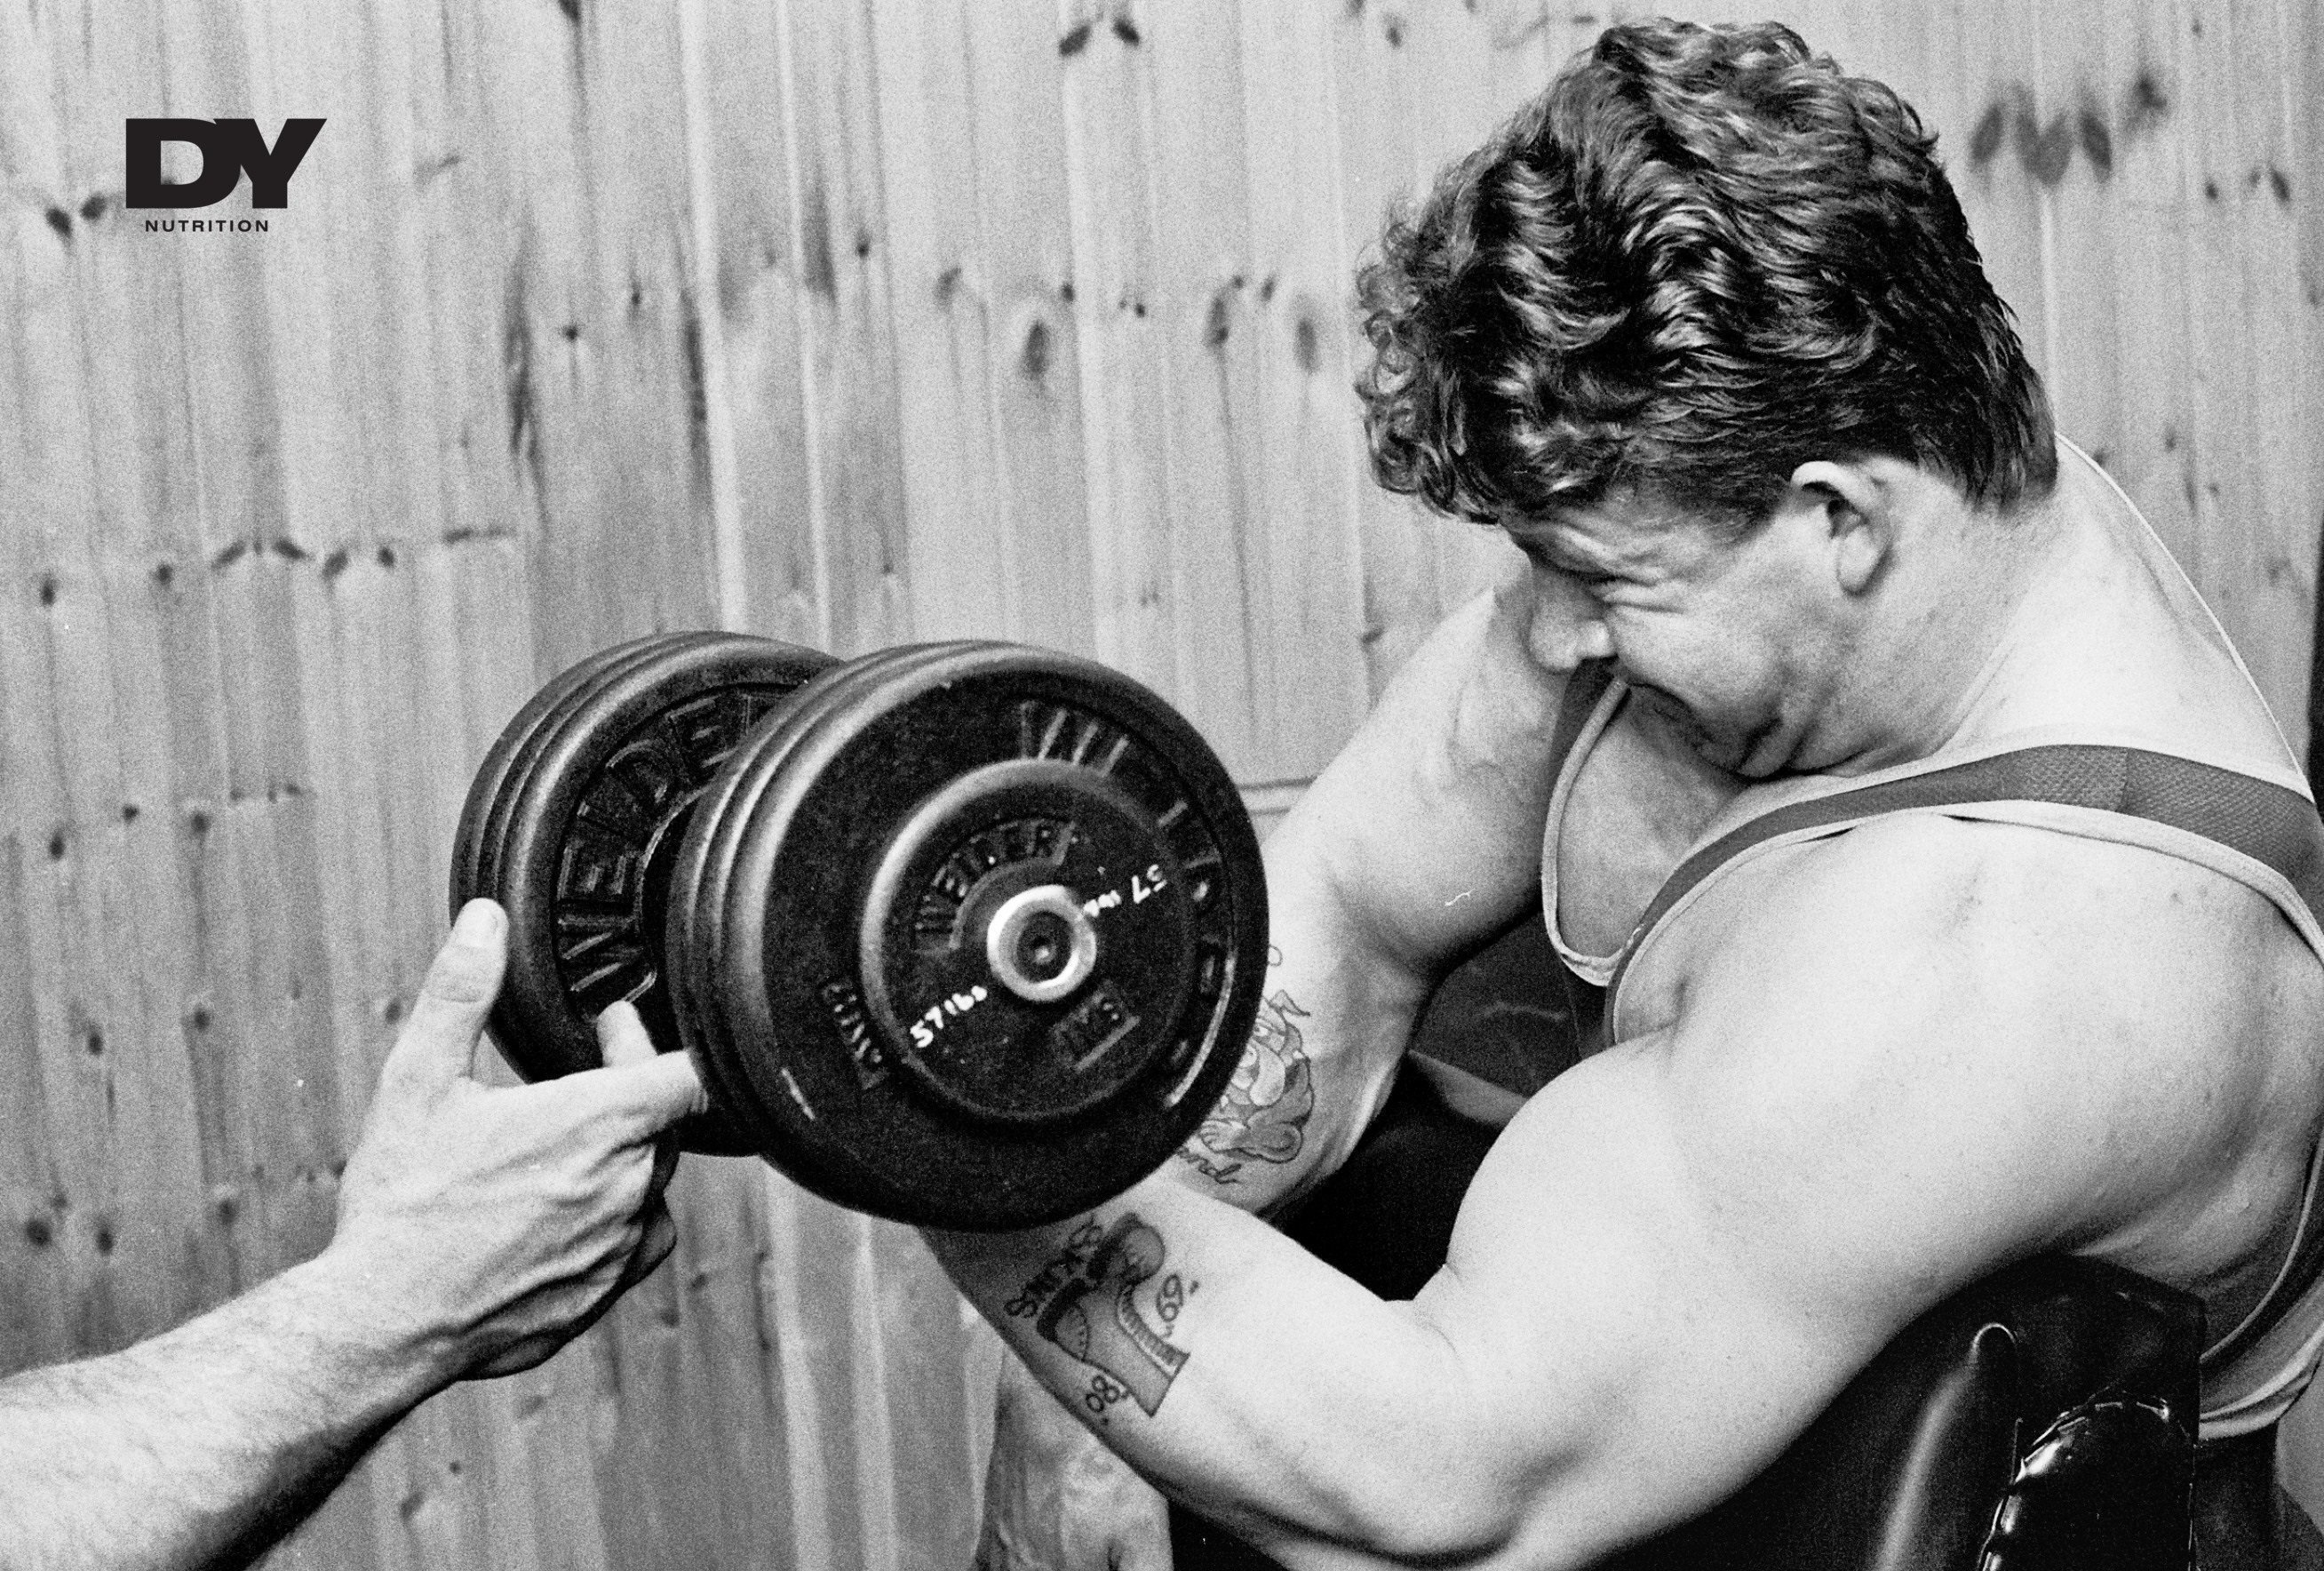 Dorian Yates, The Shadow training. He understood from the very start of his bodybuilding career that nutrition and supplementation goes hand in hand.